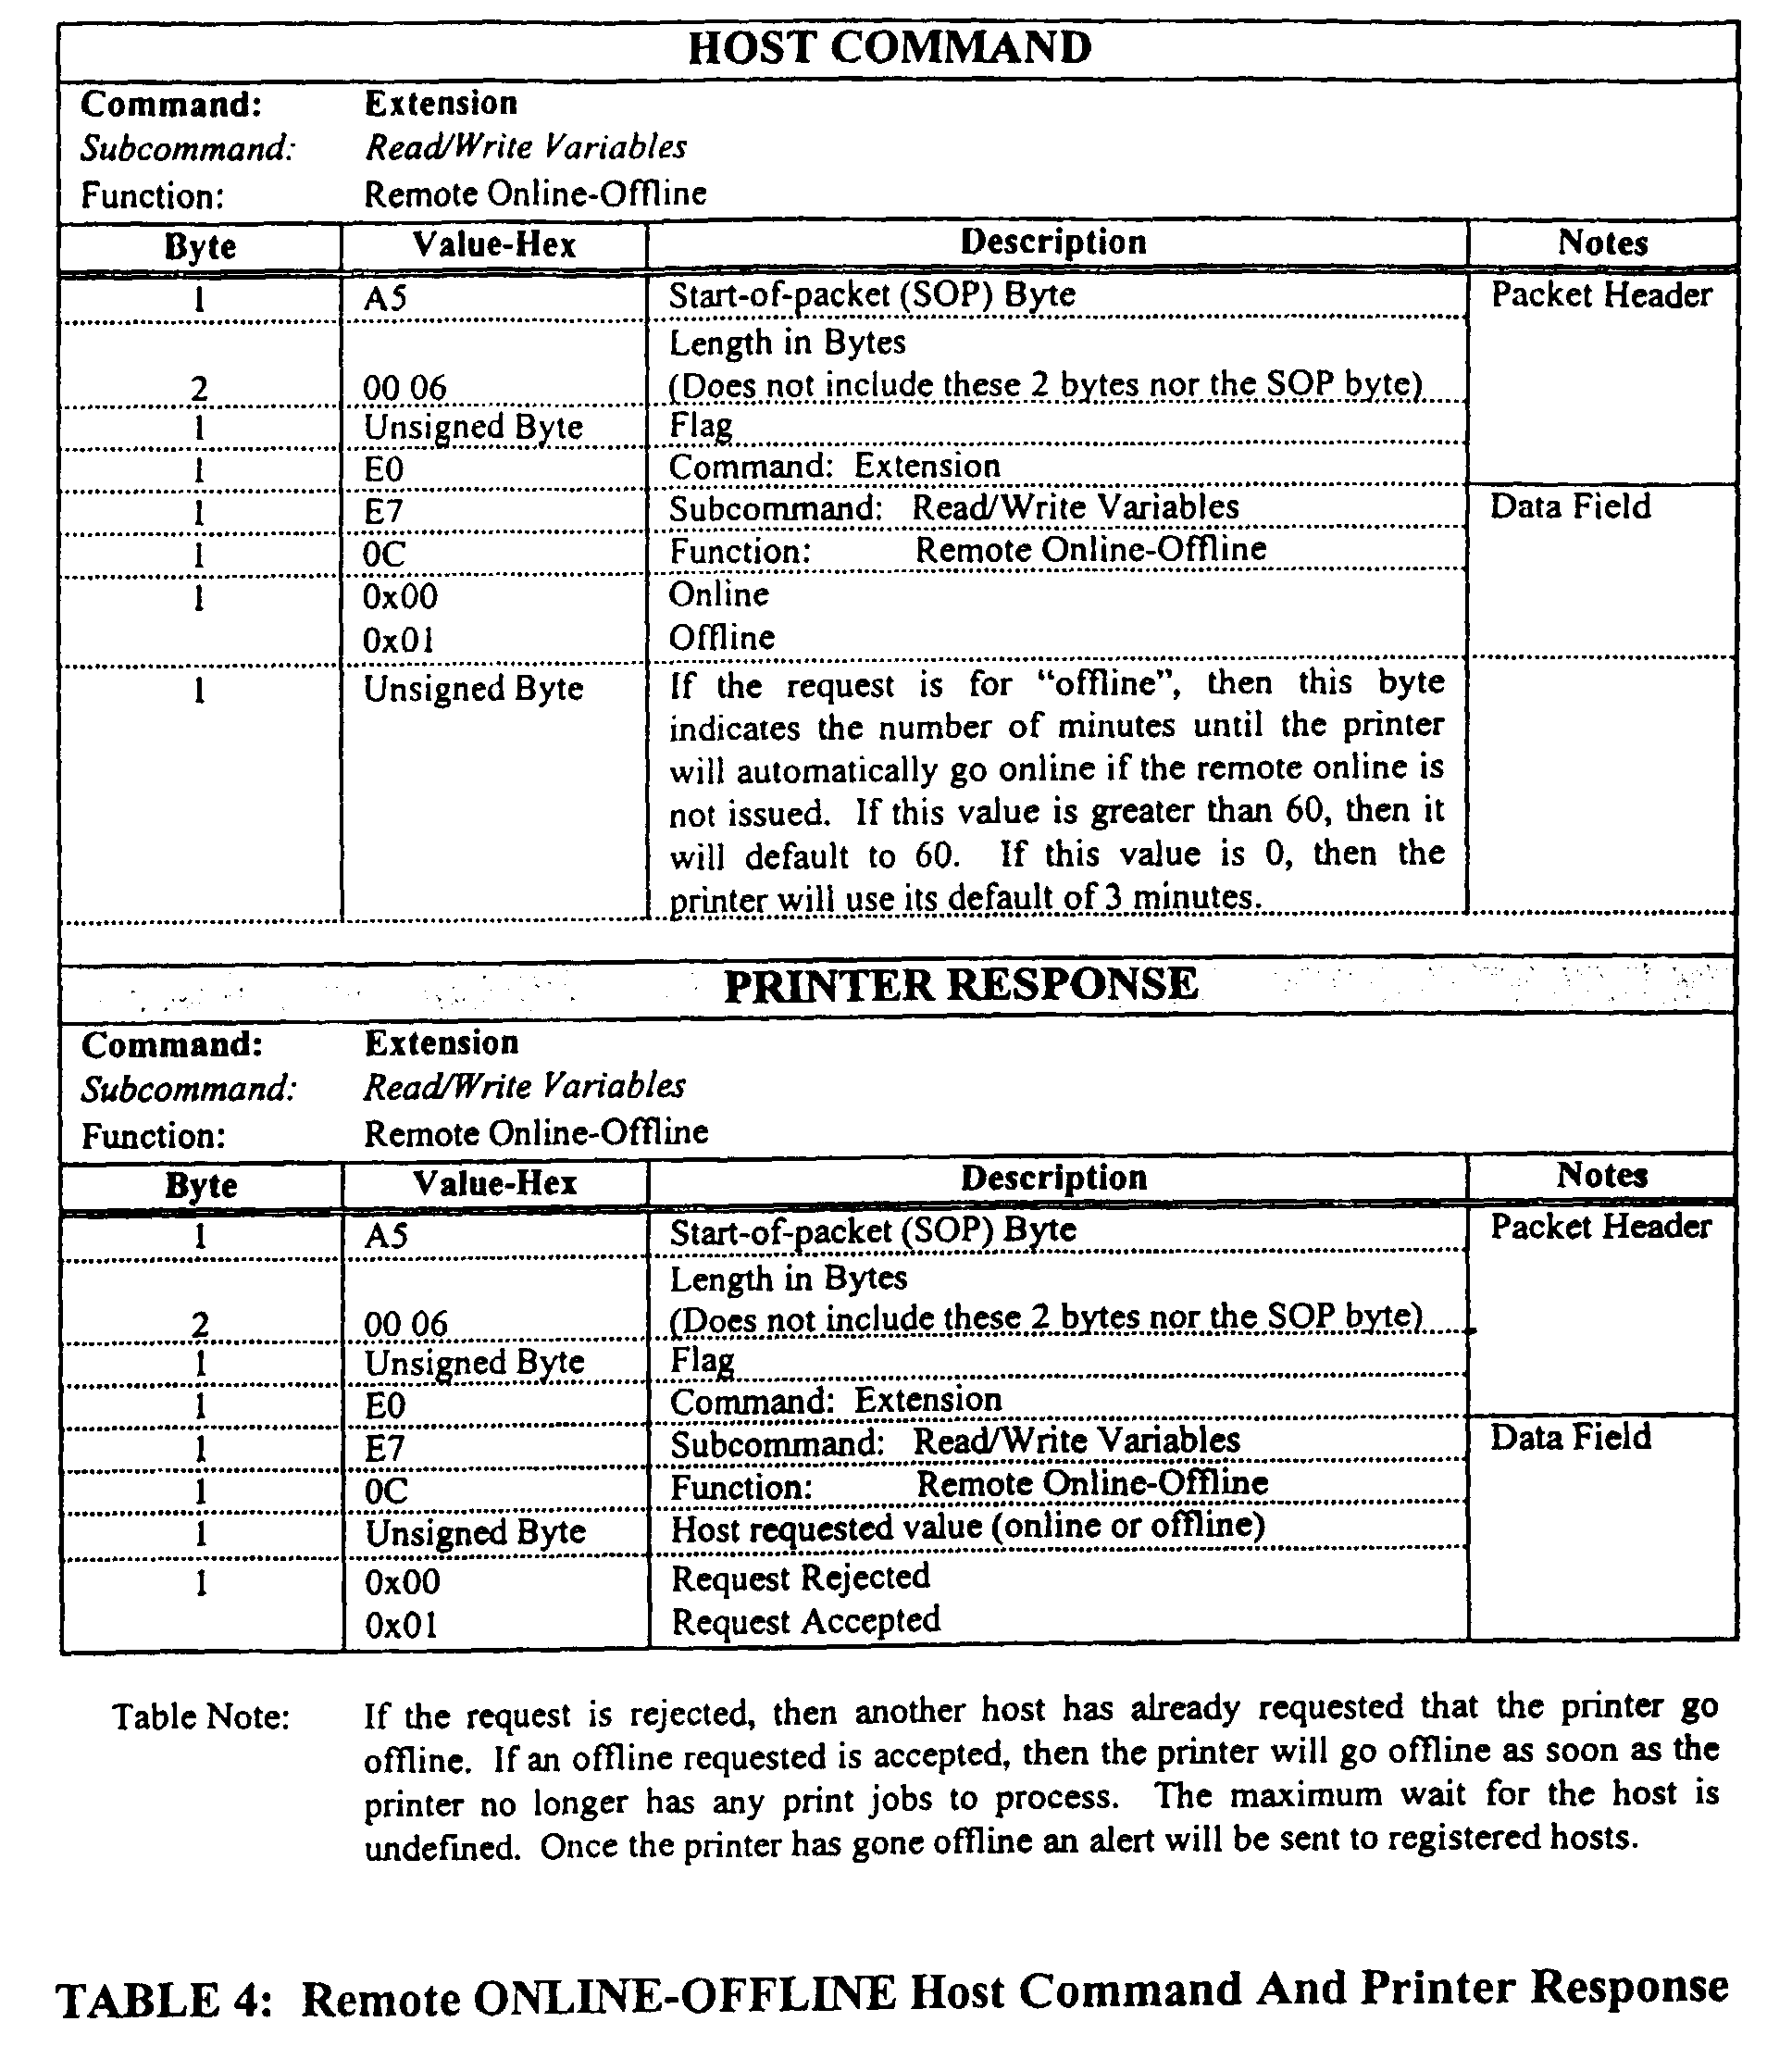 EP0809176A2 - Printer communication system and method